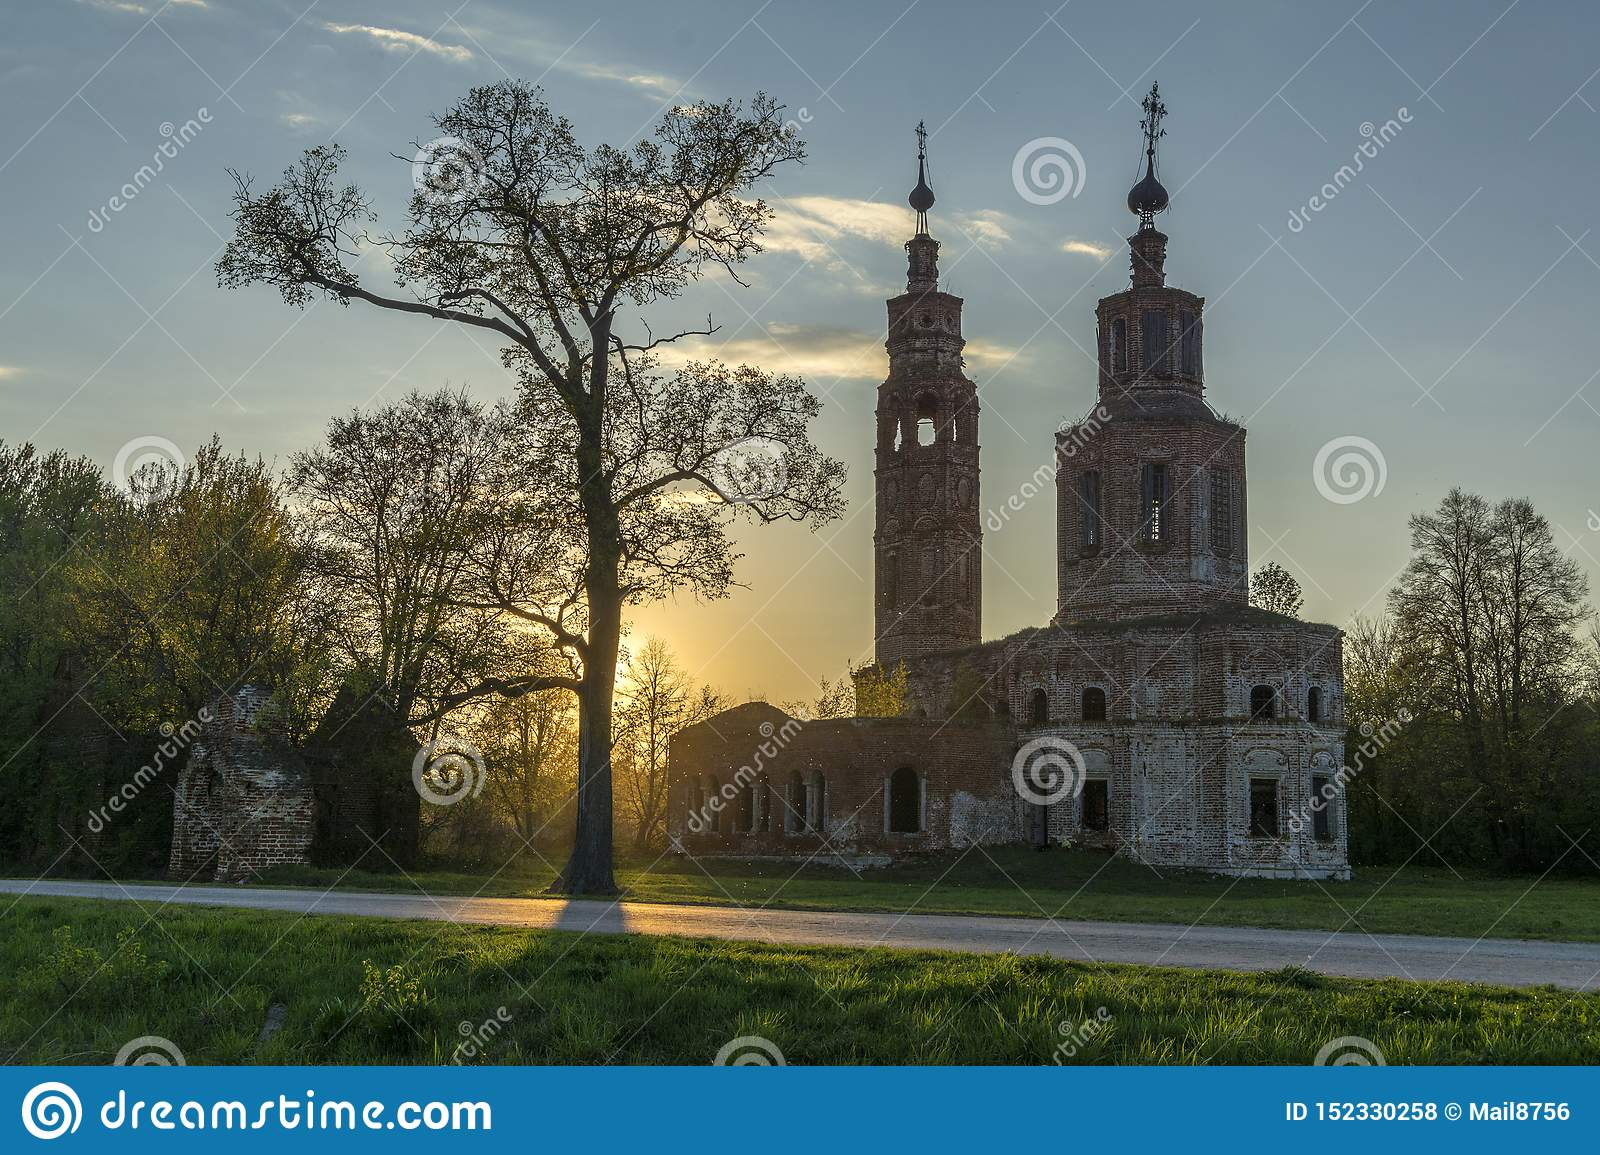 Old ruined Church of the 18th century in the village of Kolentsy, Russia in the evening